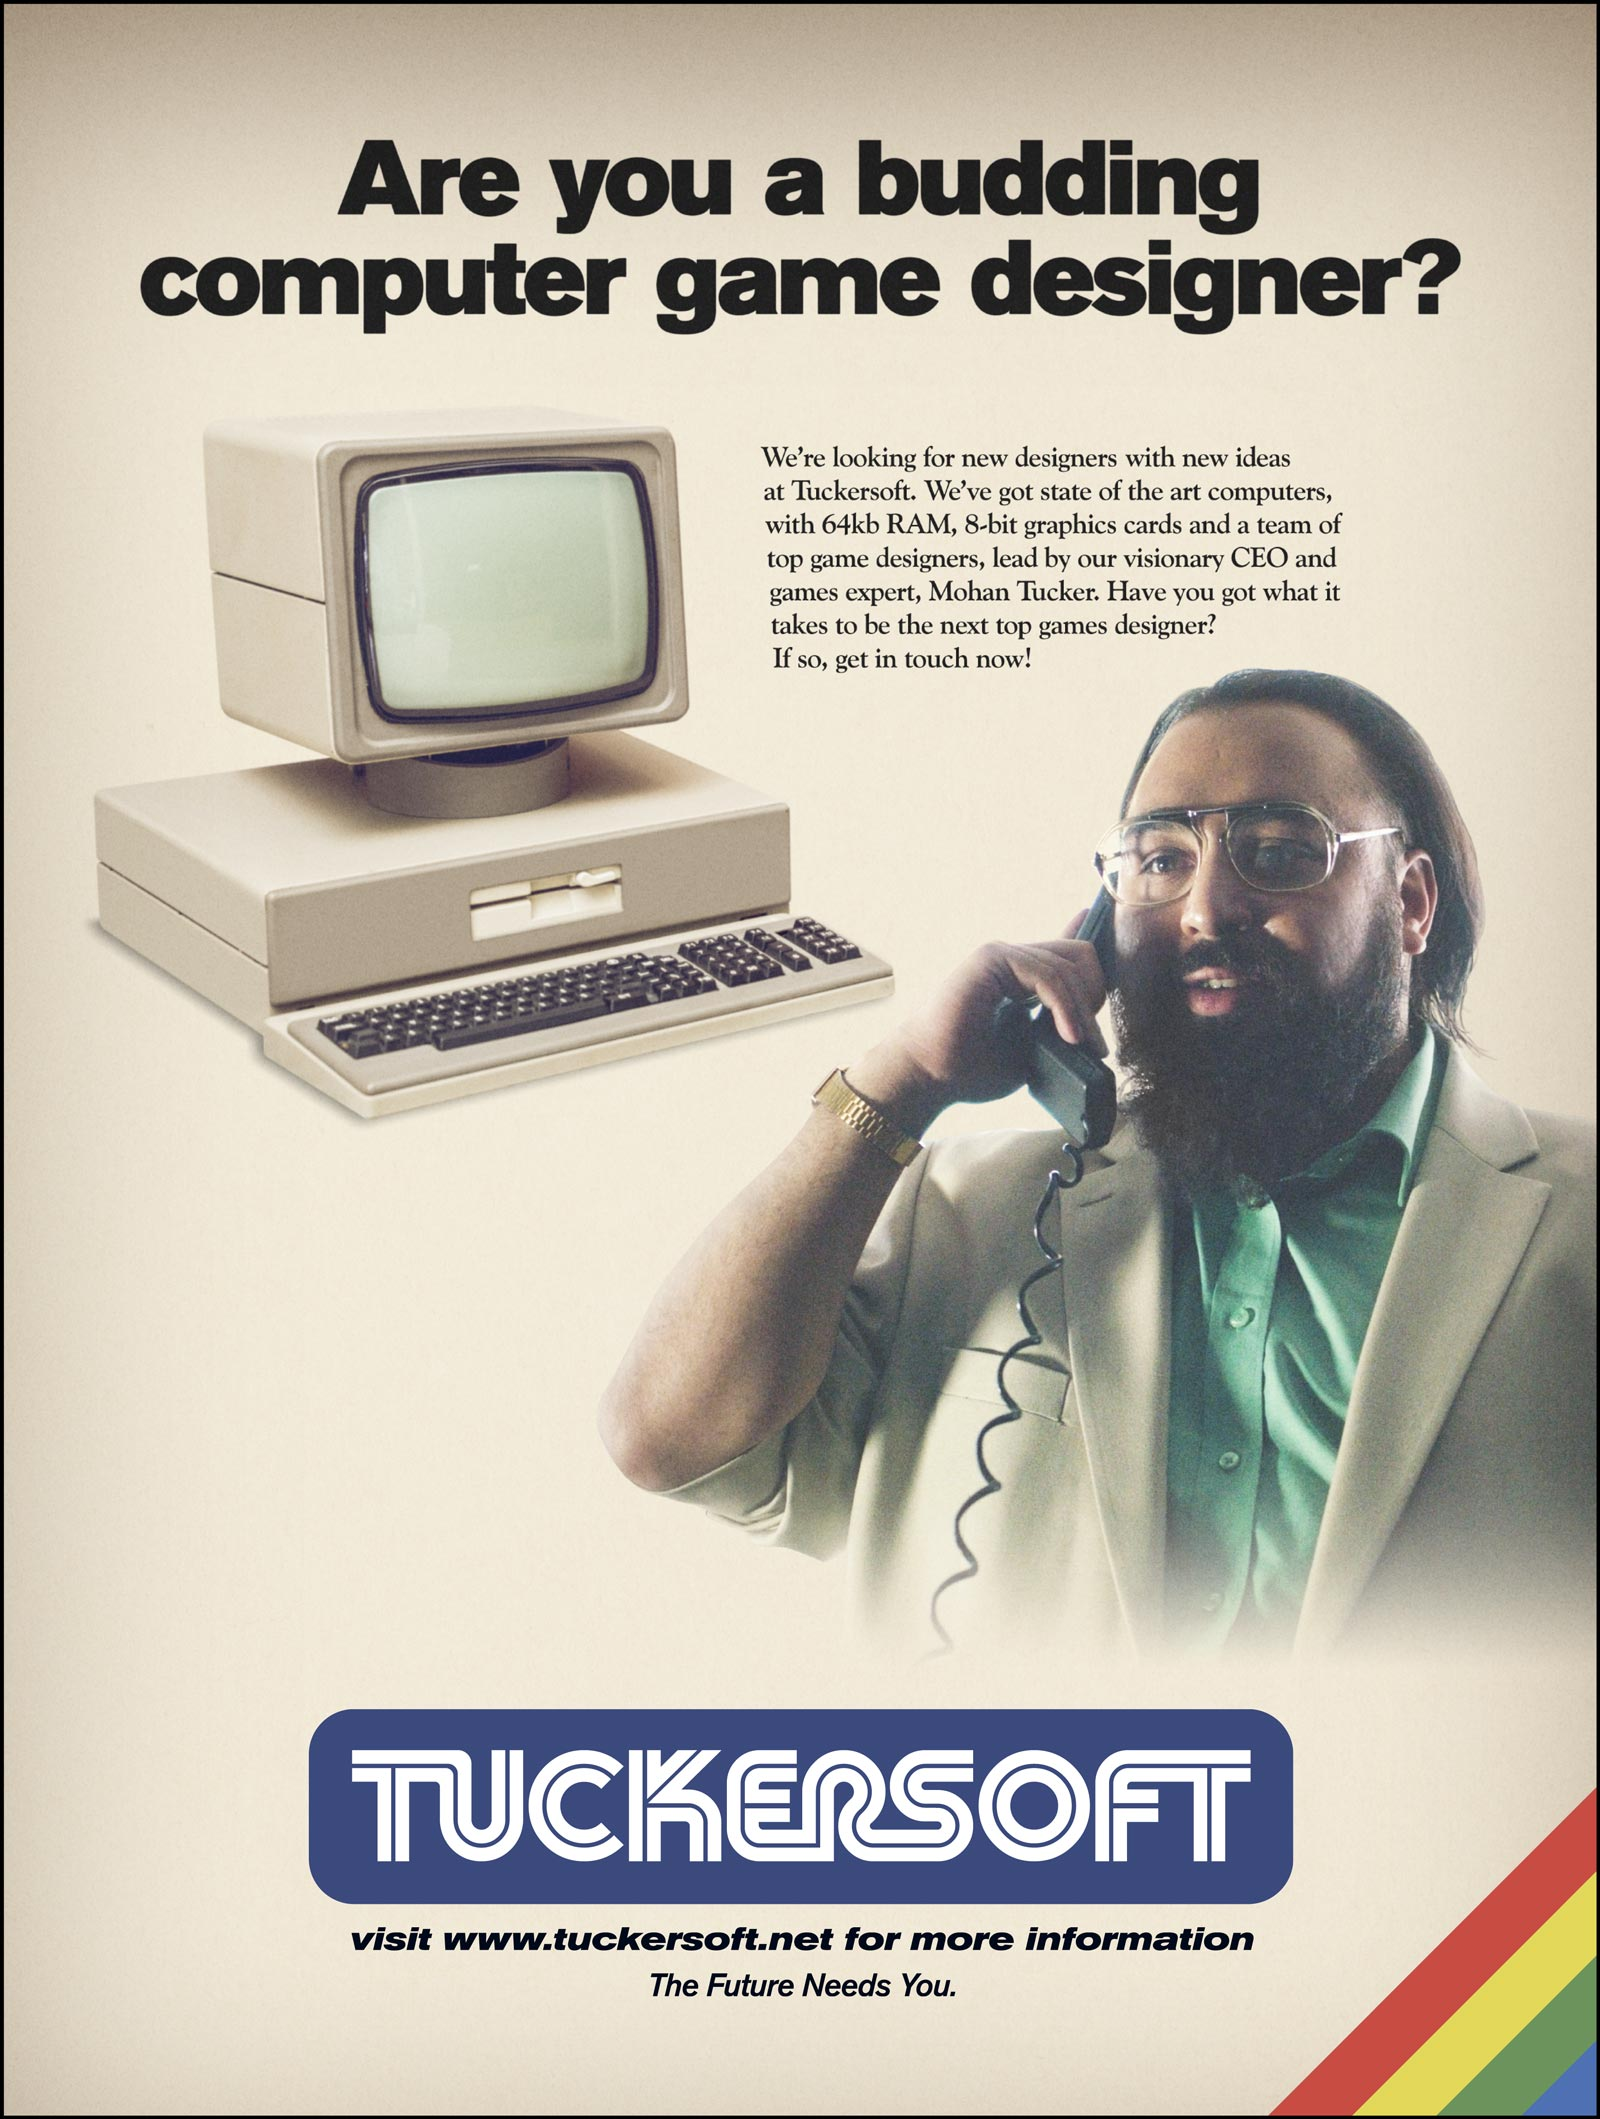 Tuckersoft Job Poster